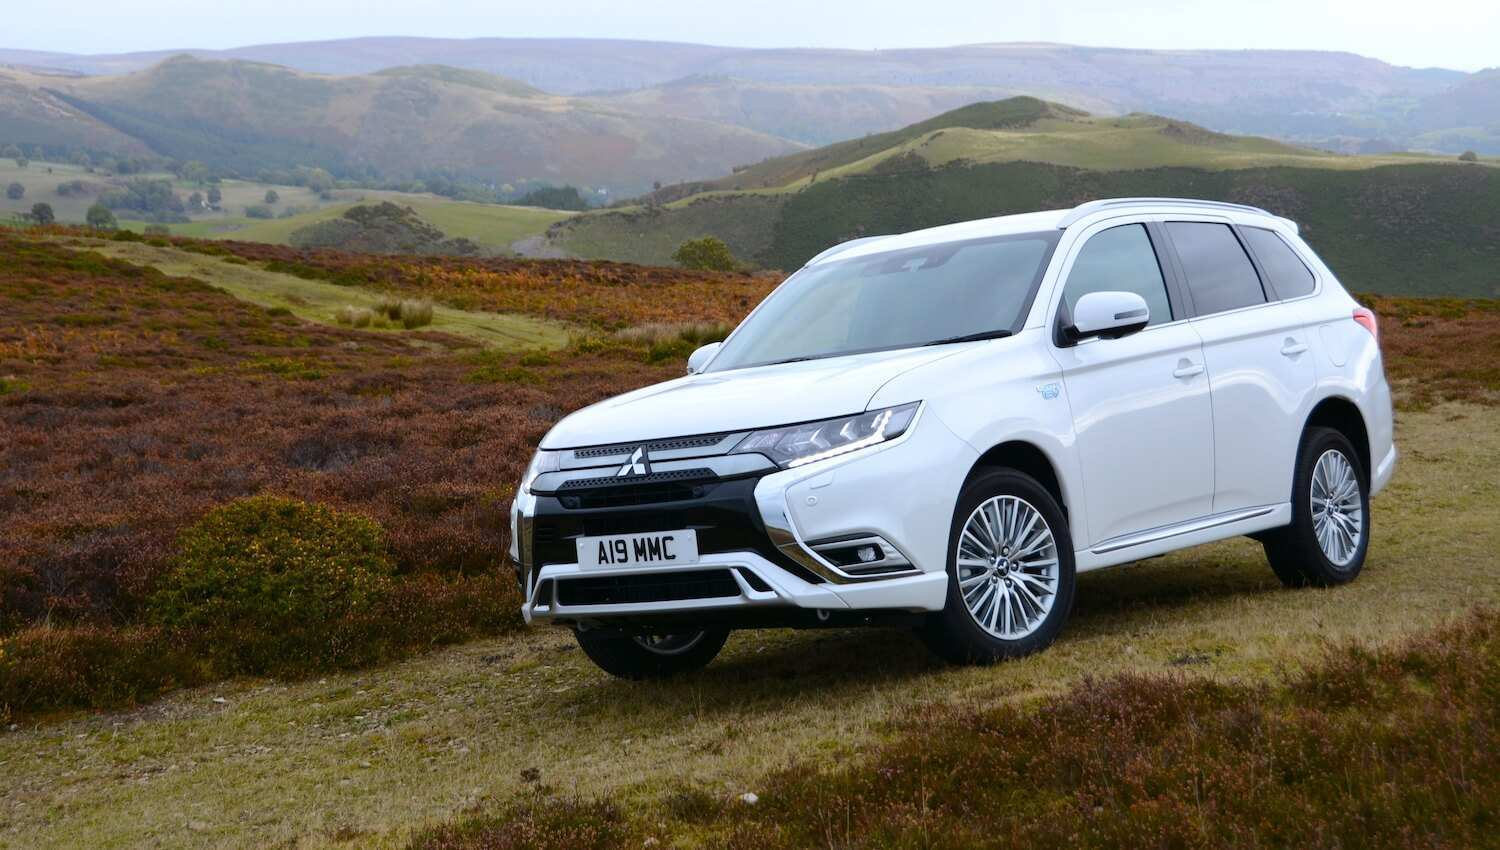 26 All New 2019 Mitsubishi Outlander Phev Review Images with 2019 Mitsubishi Outlander Phev Review